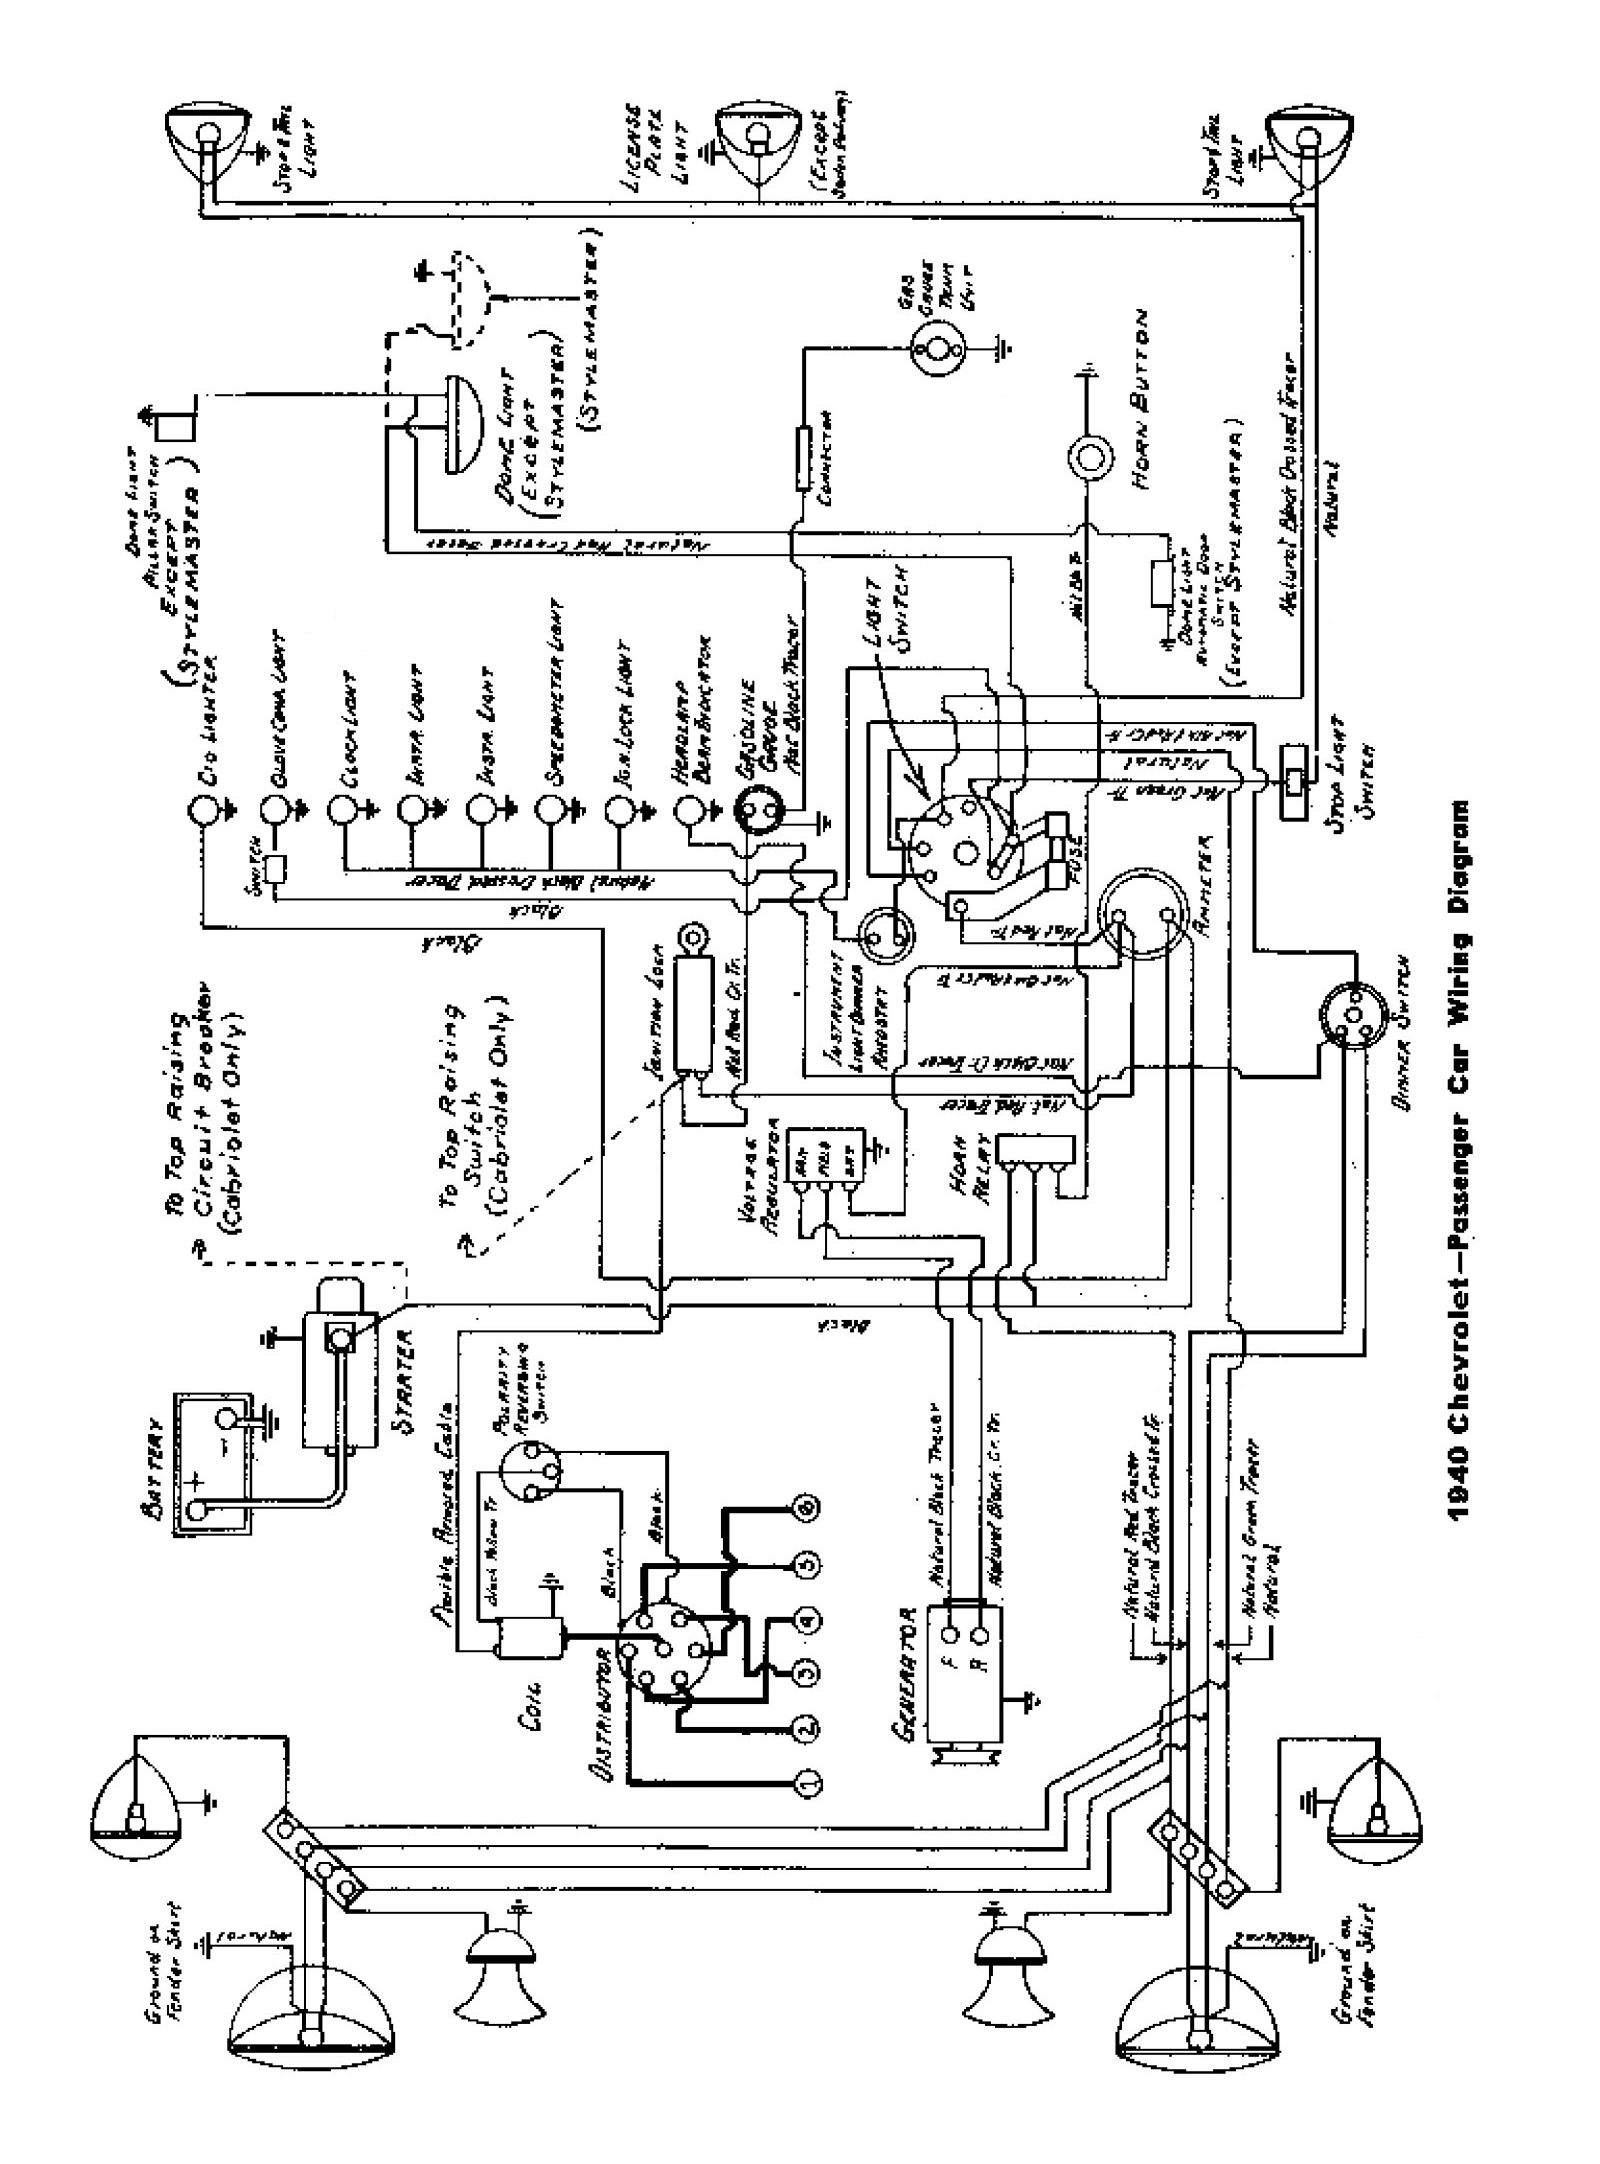 2014 Gmc Sierra Wiring Diagram Free Download Wiring Diagram